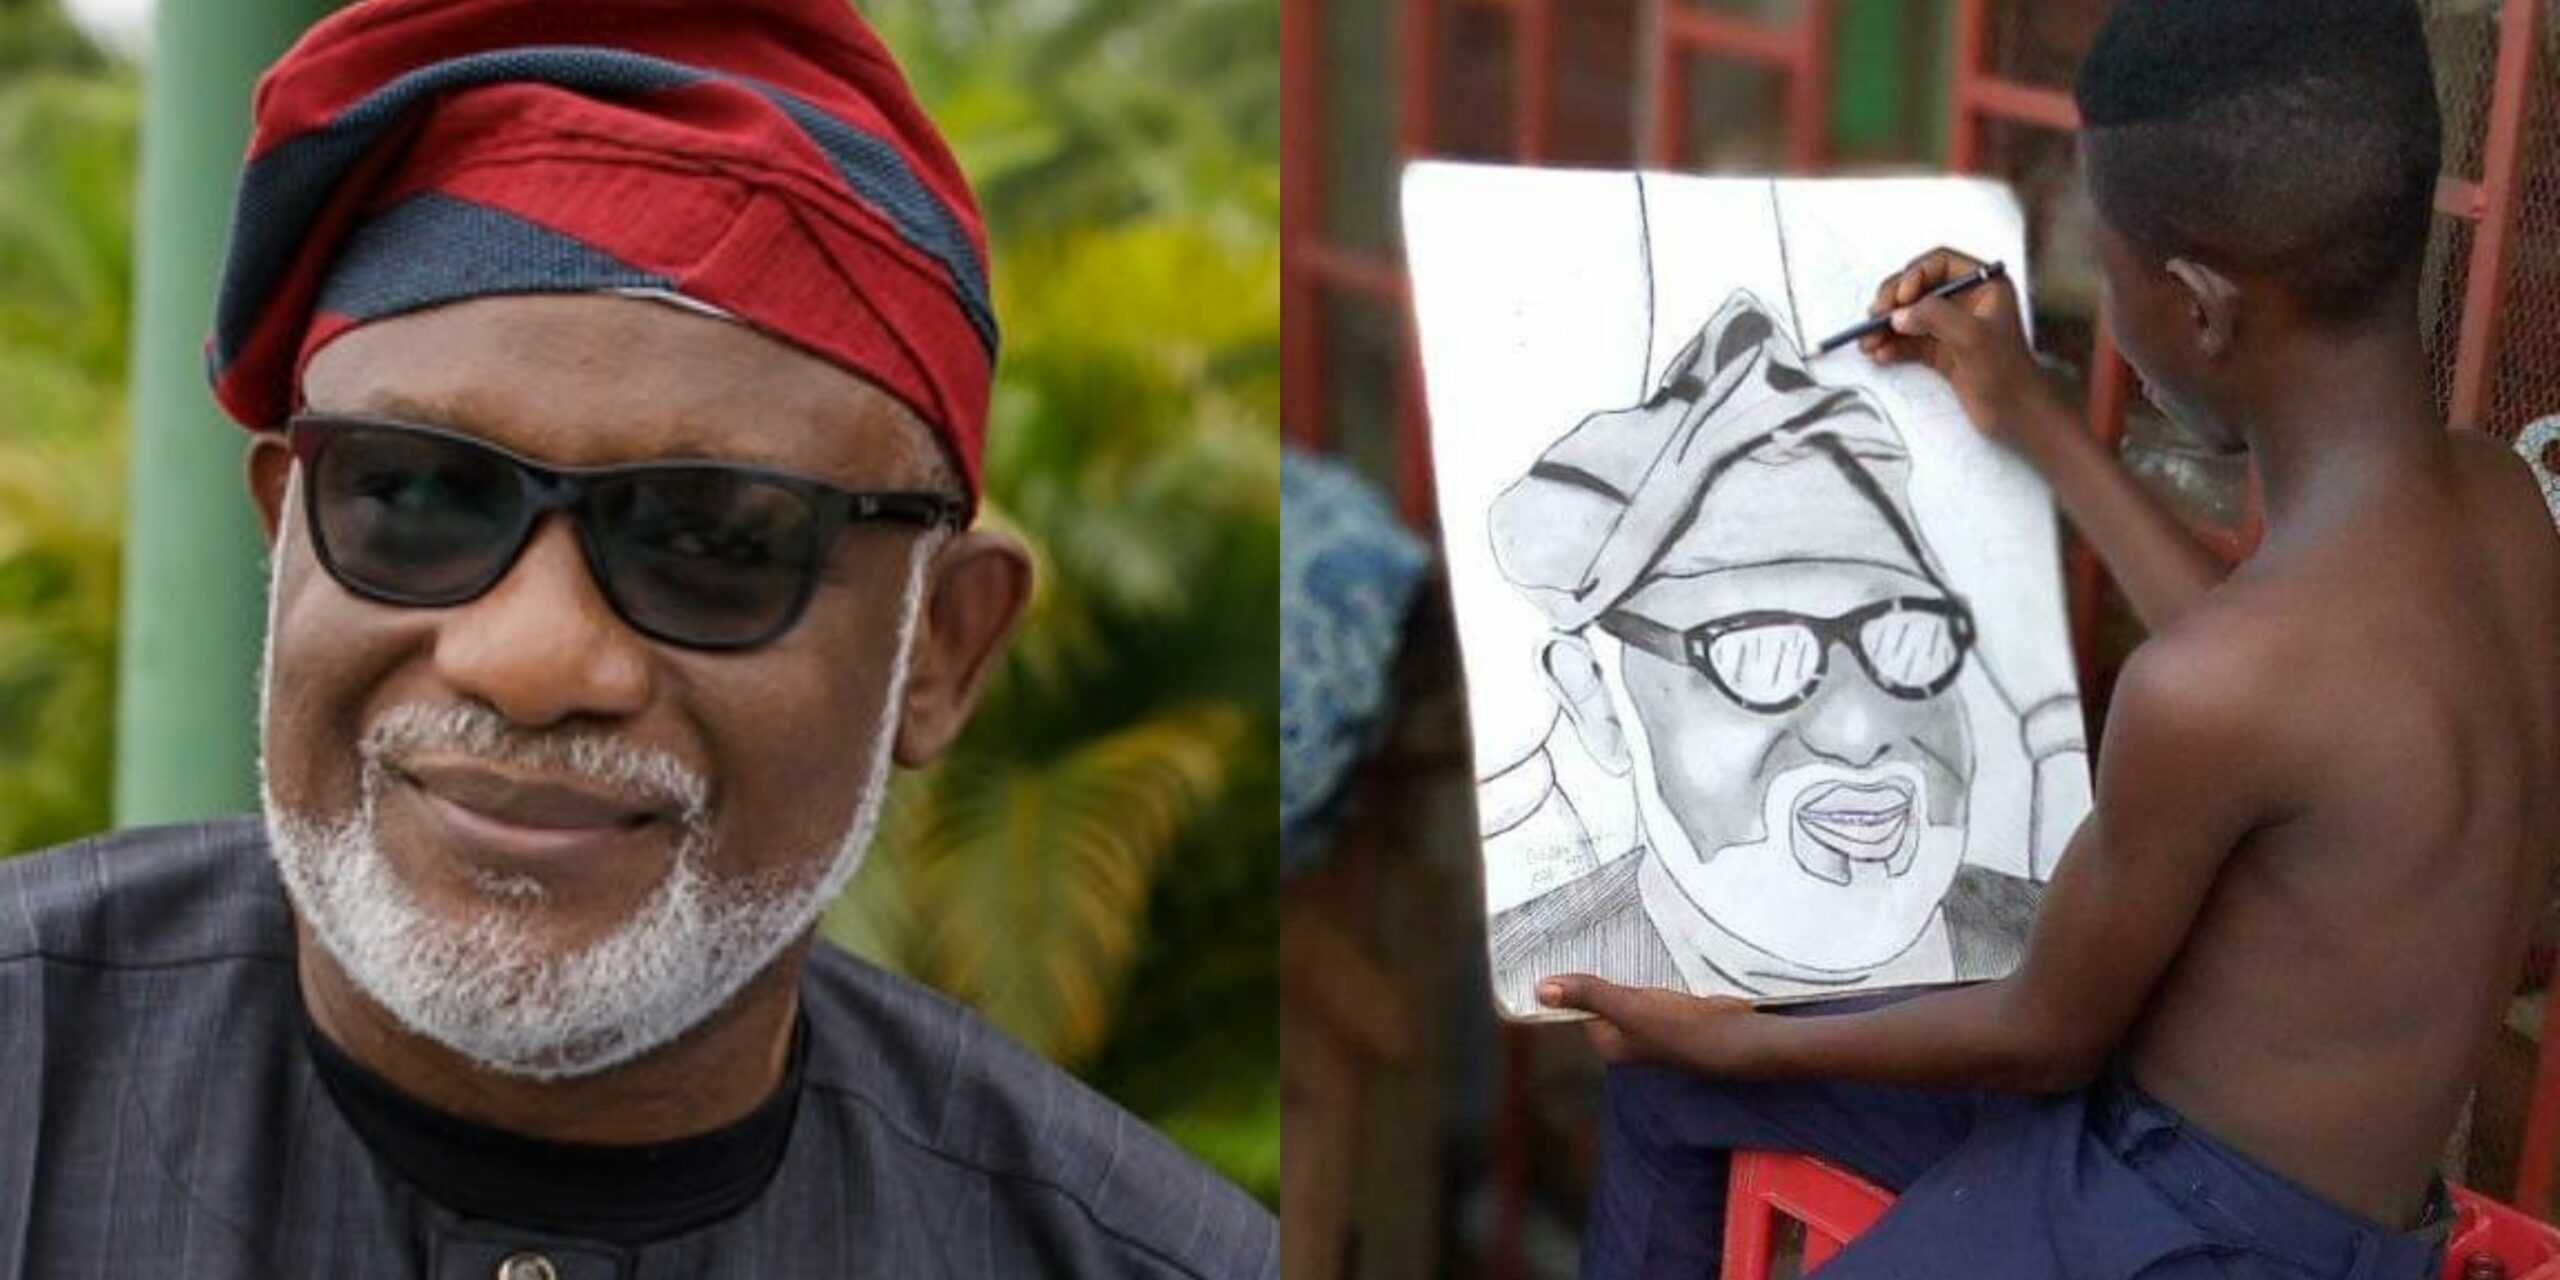 Ondo Gov., Akeredolu offers to buy a portrait painting of himself from a Young boy on social media